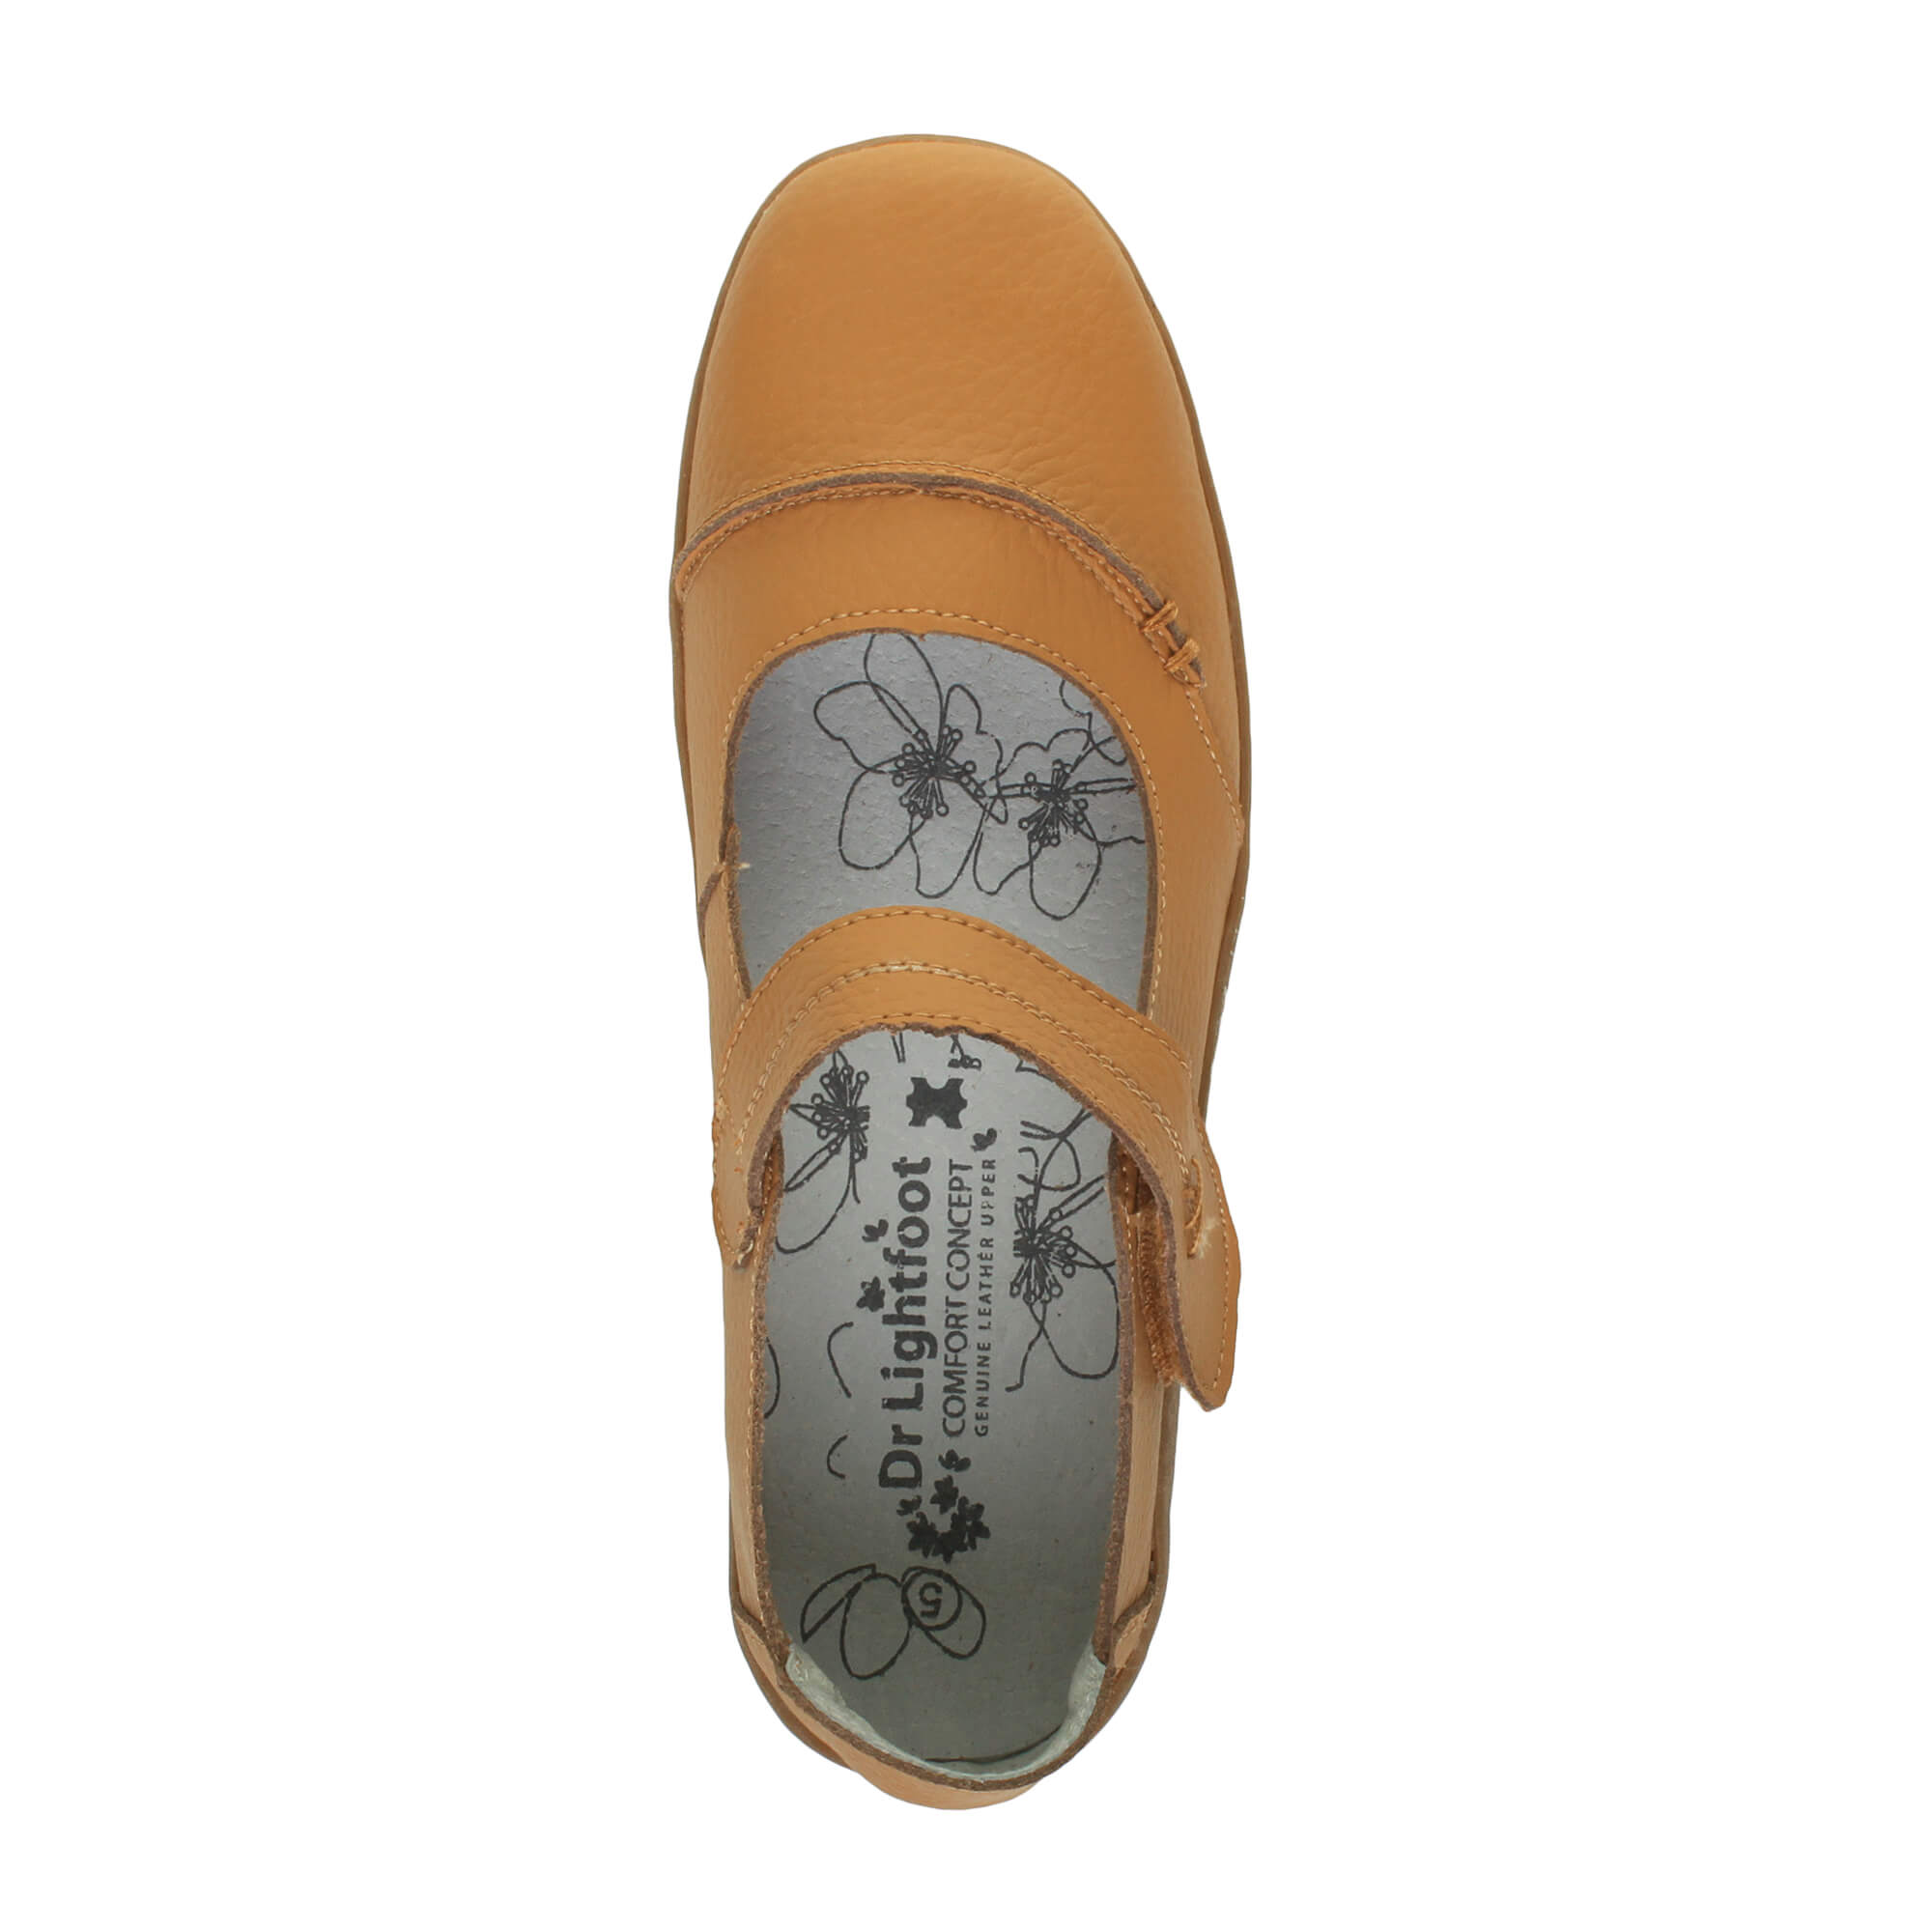 WOMENS-LADIES-LEATHER-COMFORT-STRAP-WALKING-CASUAL-SANDALS-MARY-JANE-SHOES-SIZE